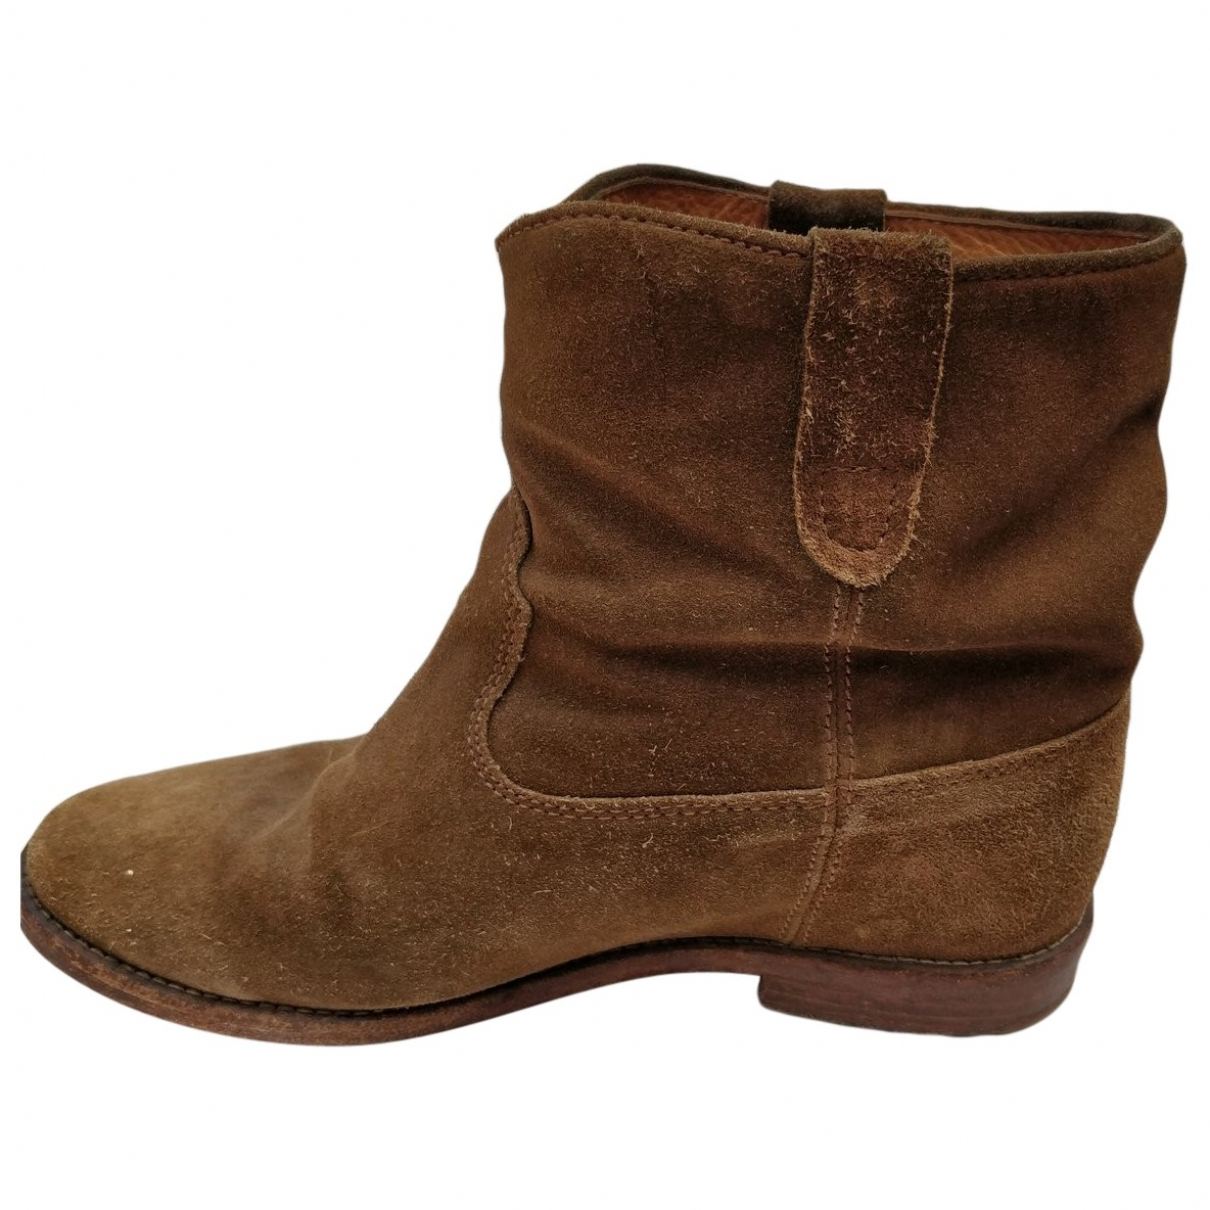 Isabel Marant Crisi  Brown Suede Ankle boots for Women 38 EU